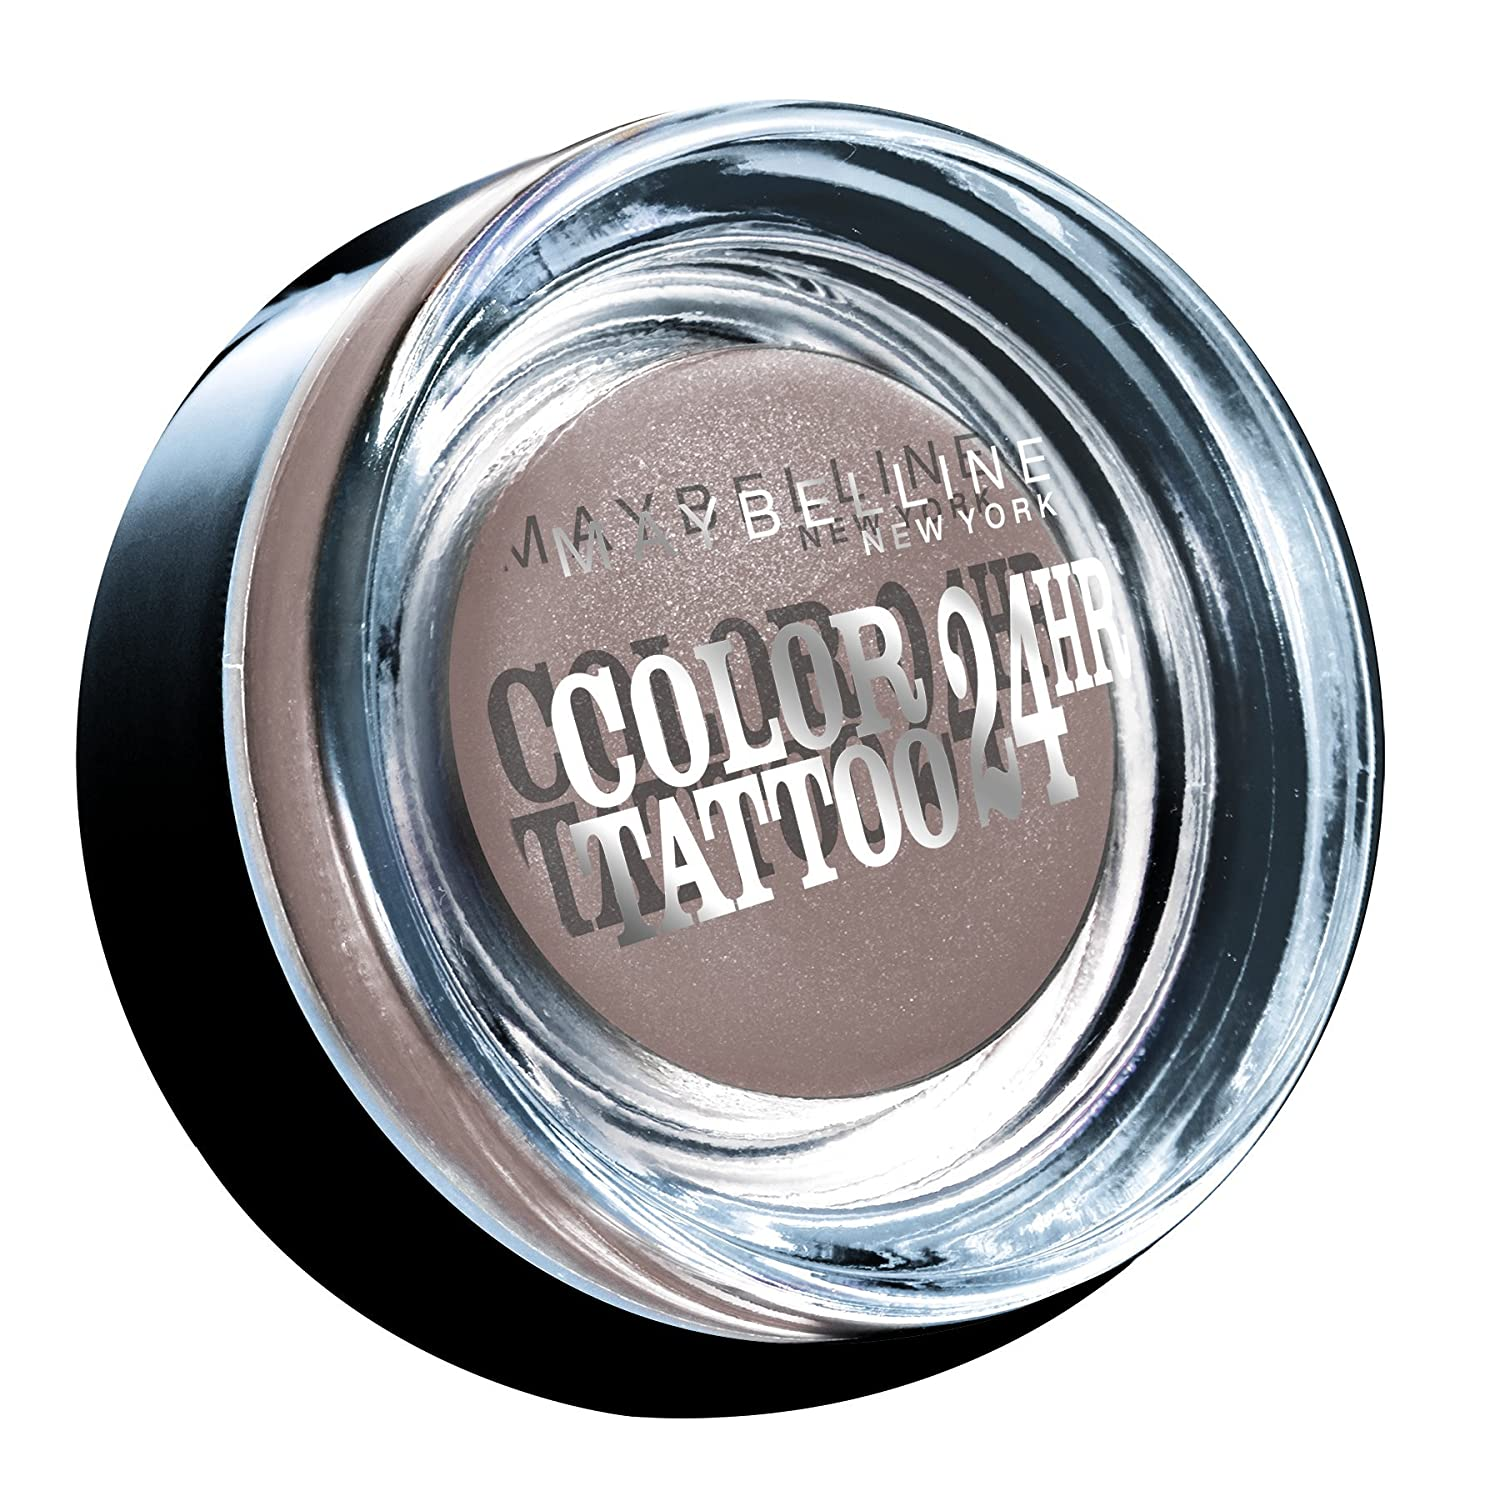 Maybelline Jade - Ombretto in gel Color Tattoo 24H, n° 65 Pink Gold, 1 pz. (1 x 4,5 g) 3600530828036